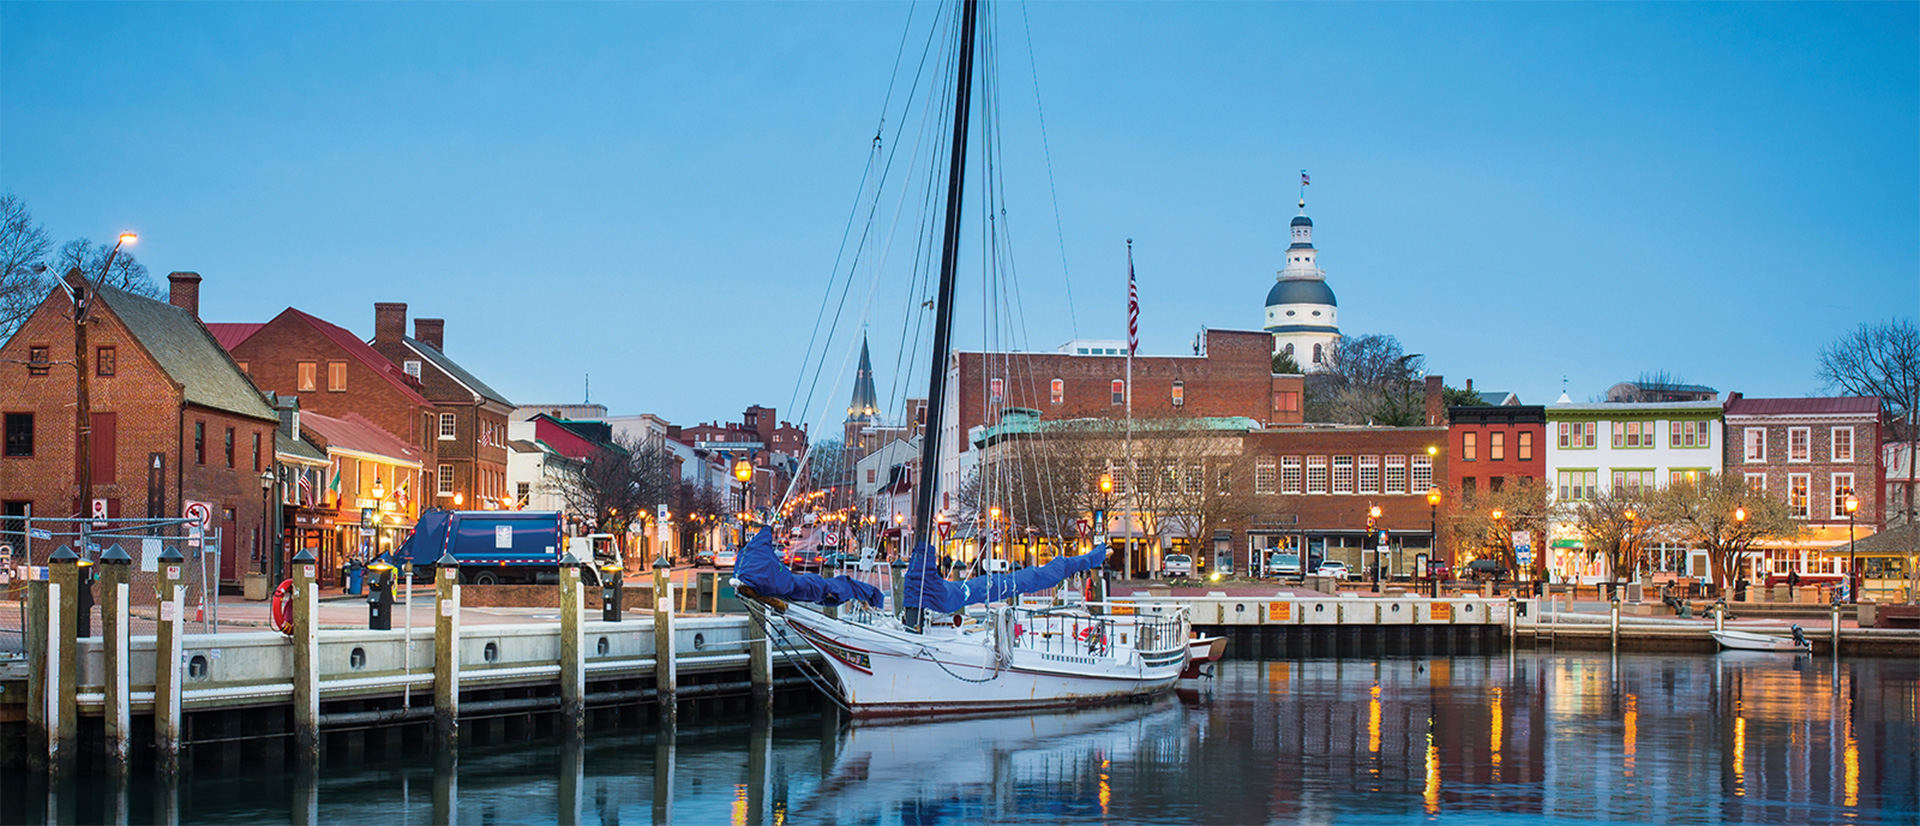 waterfront edge in the great city of Annapolis Maryland